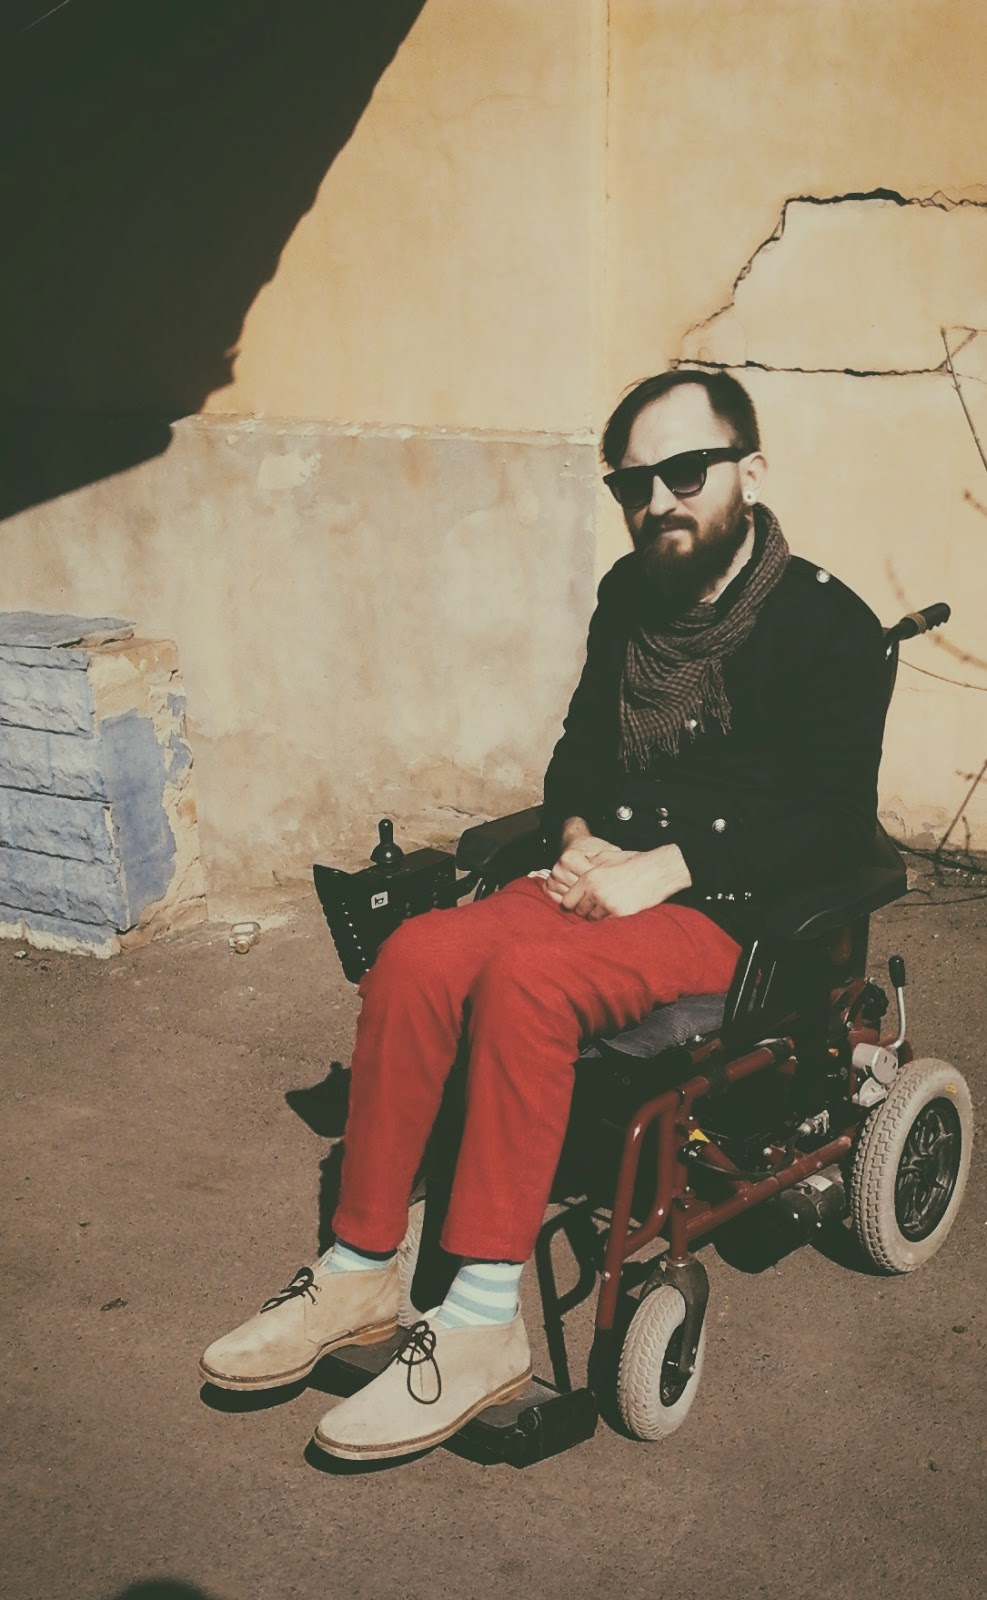 Man with full beard and mustache, wearing sunglasses, sitting in an electric wheelchair. Wearing bright red pants and a dark jacket